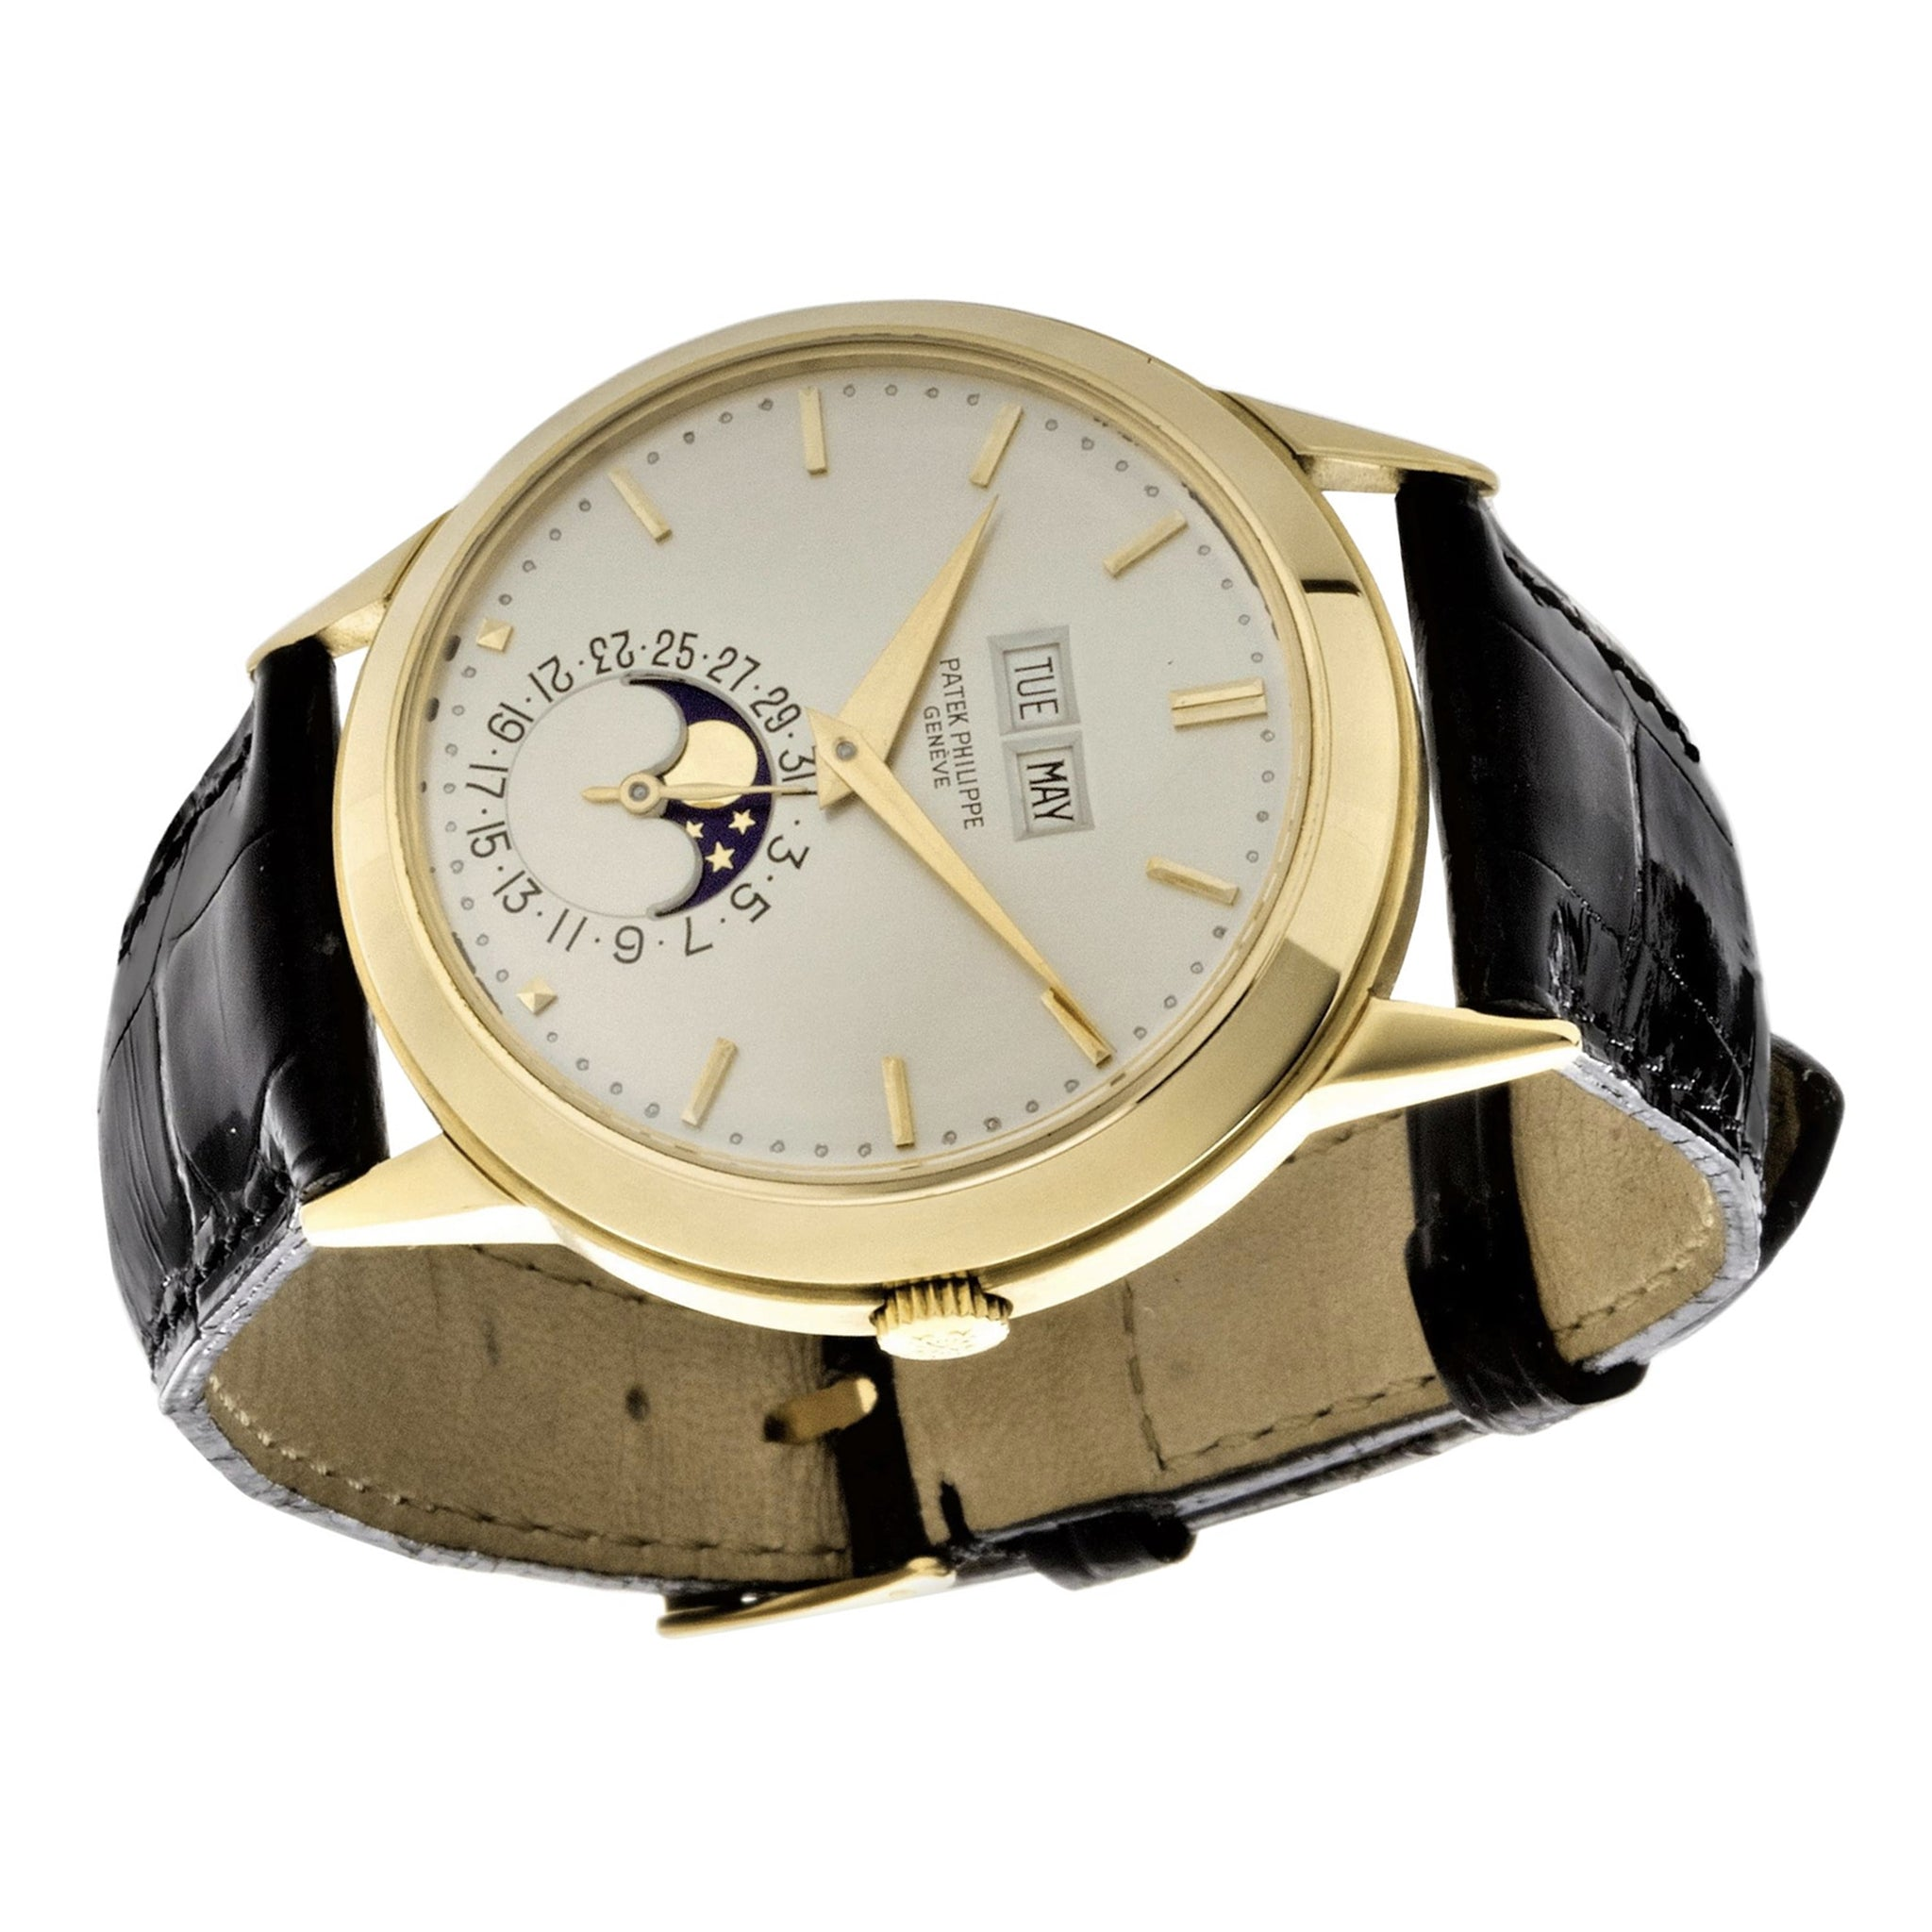 Patek Philippe 3448J Automatic Perpetual Calendar Watch